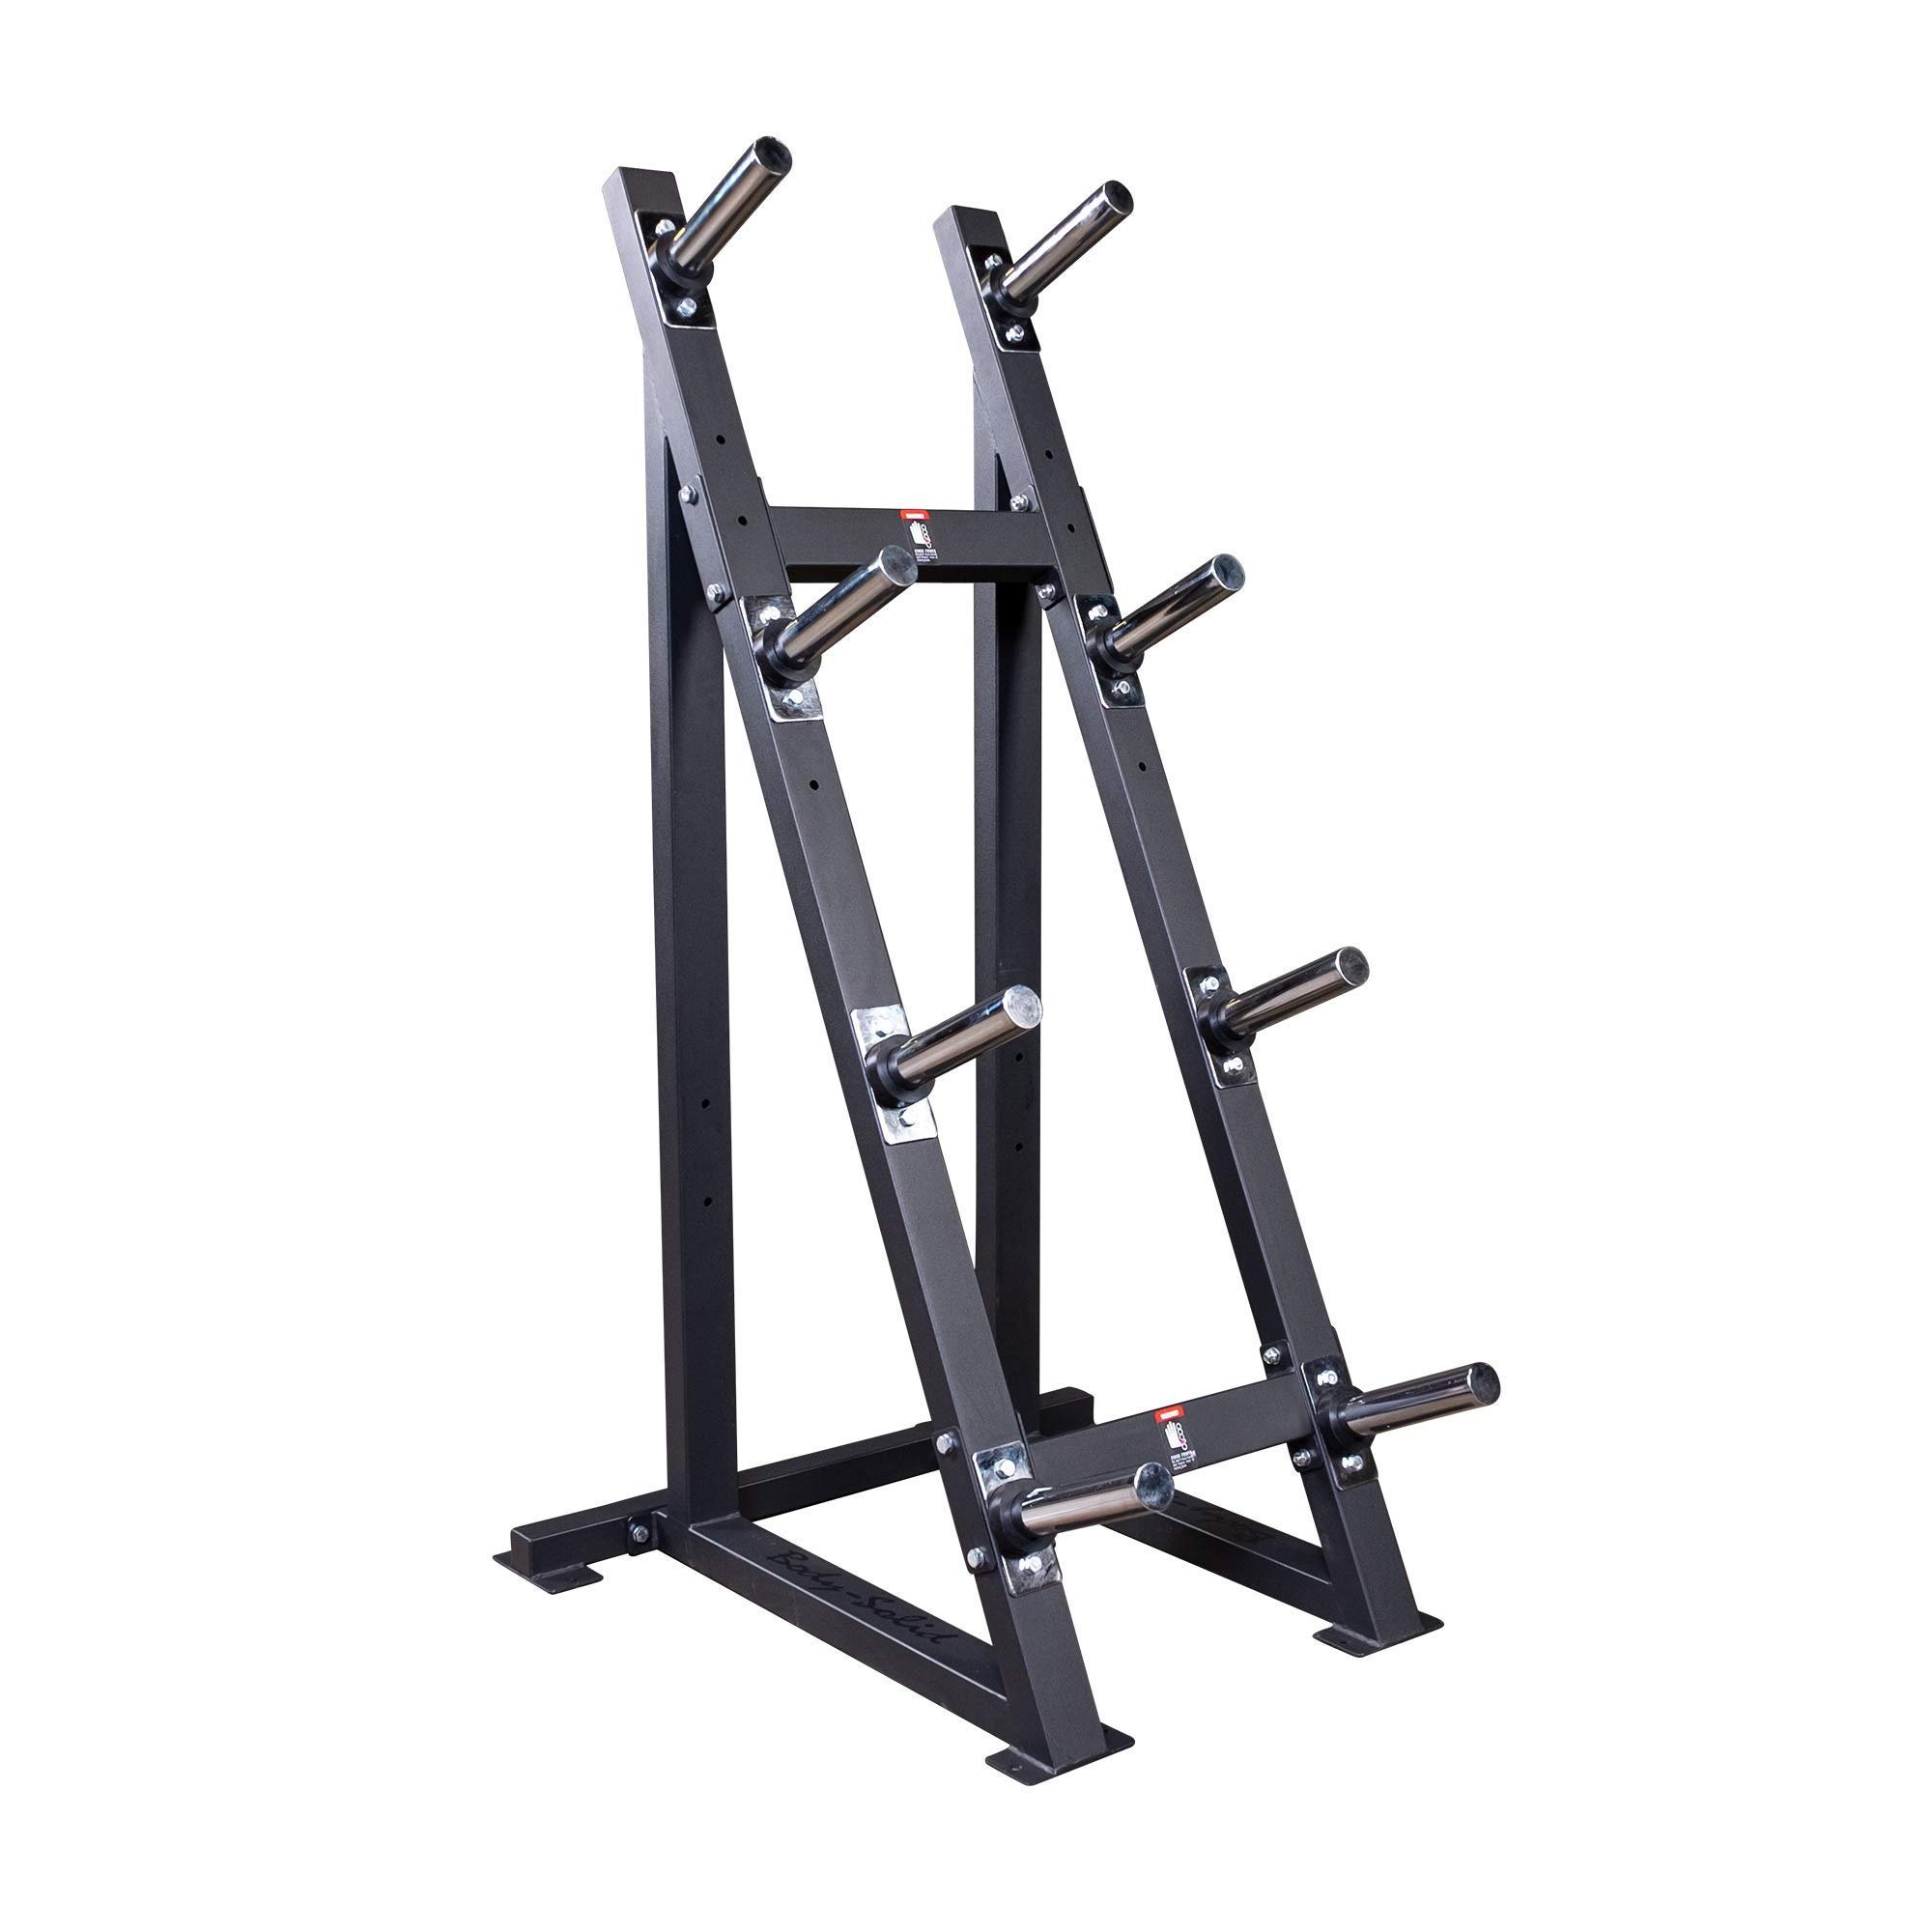 Body-Solid 1500 Pound Capacity High Capacity Olympic Plate Rack